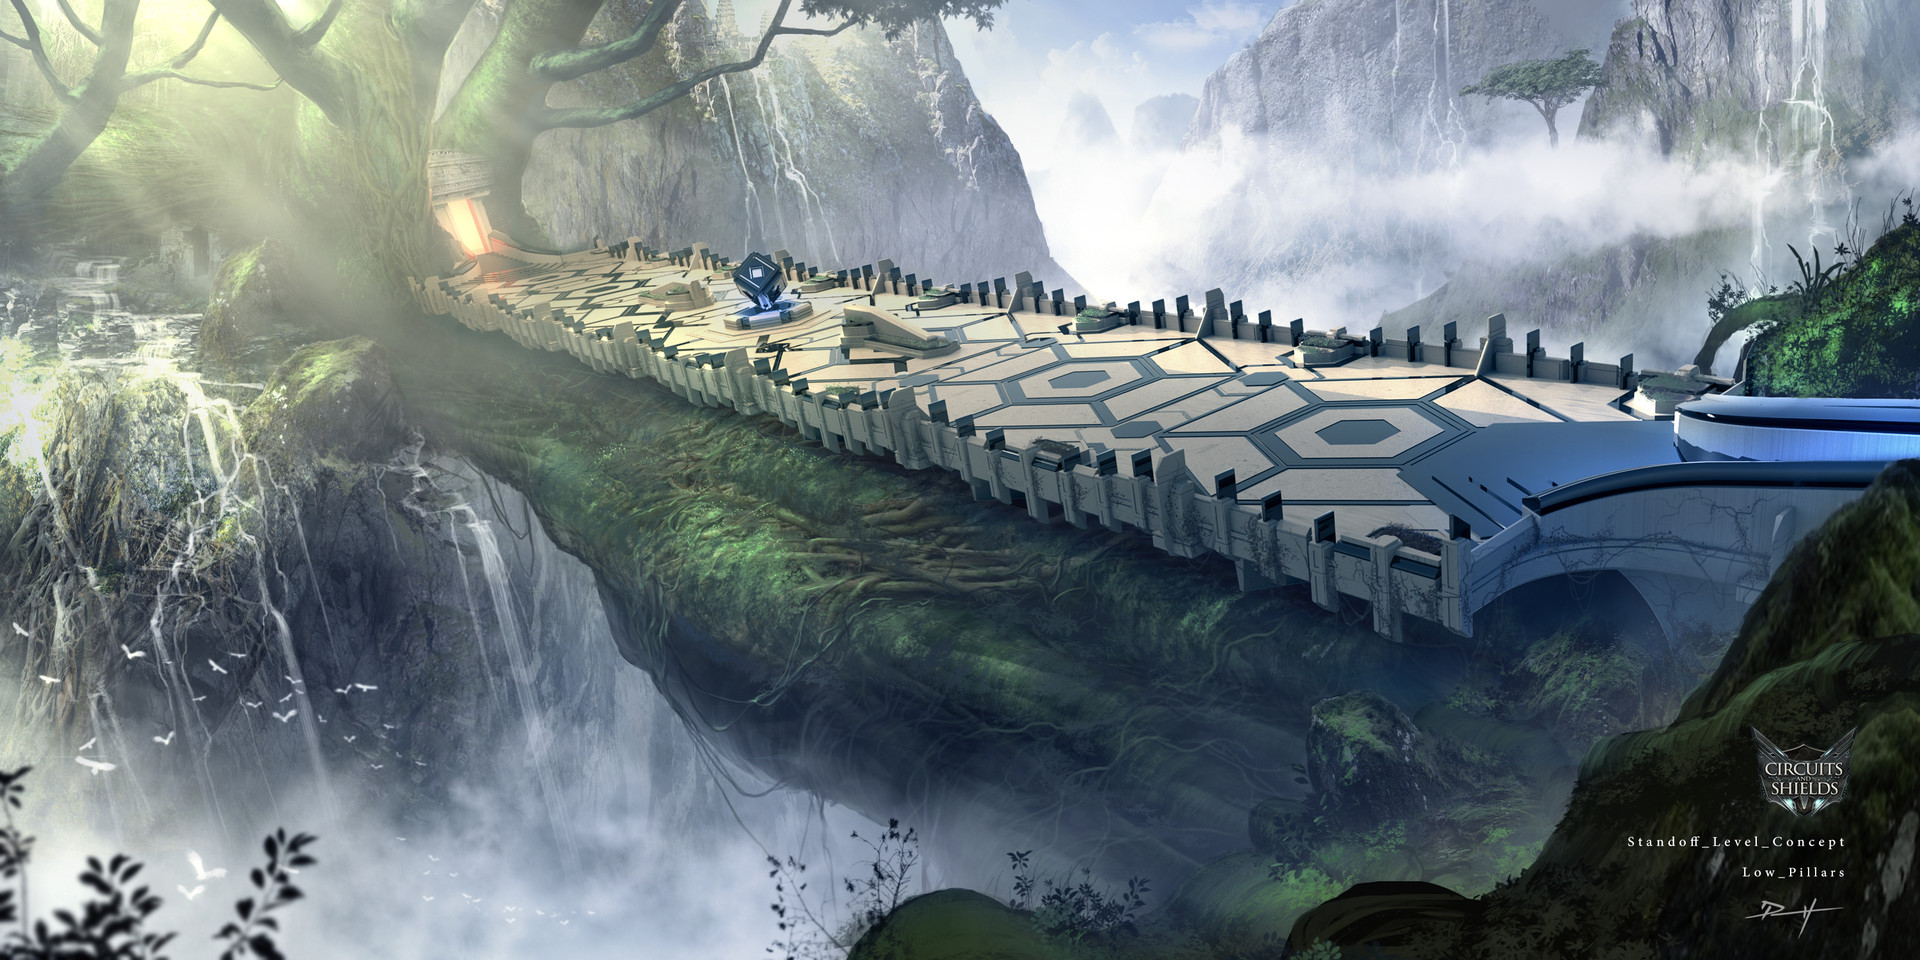 Daniel pellow grand tree gorge level concept 3 3 no pillars final